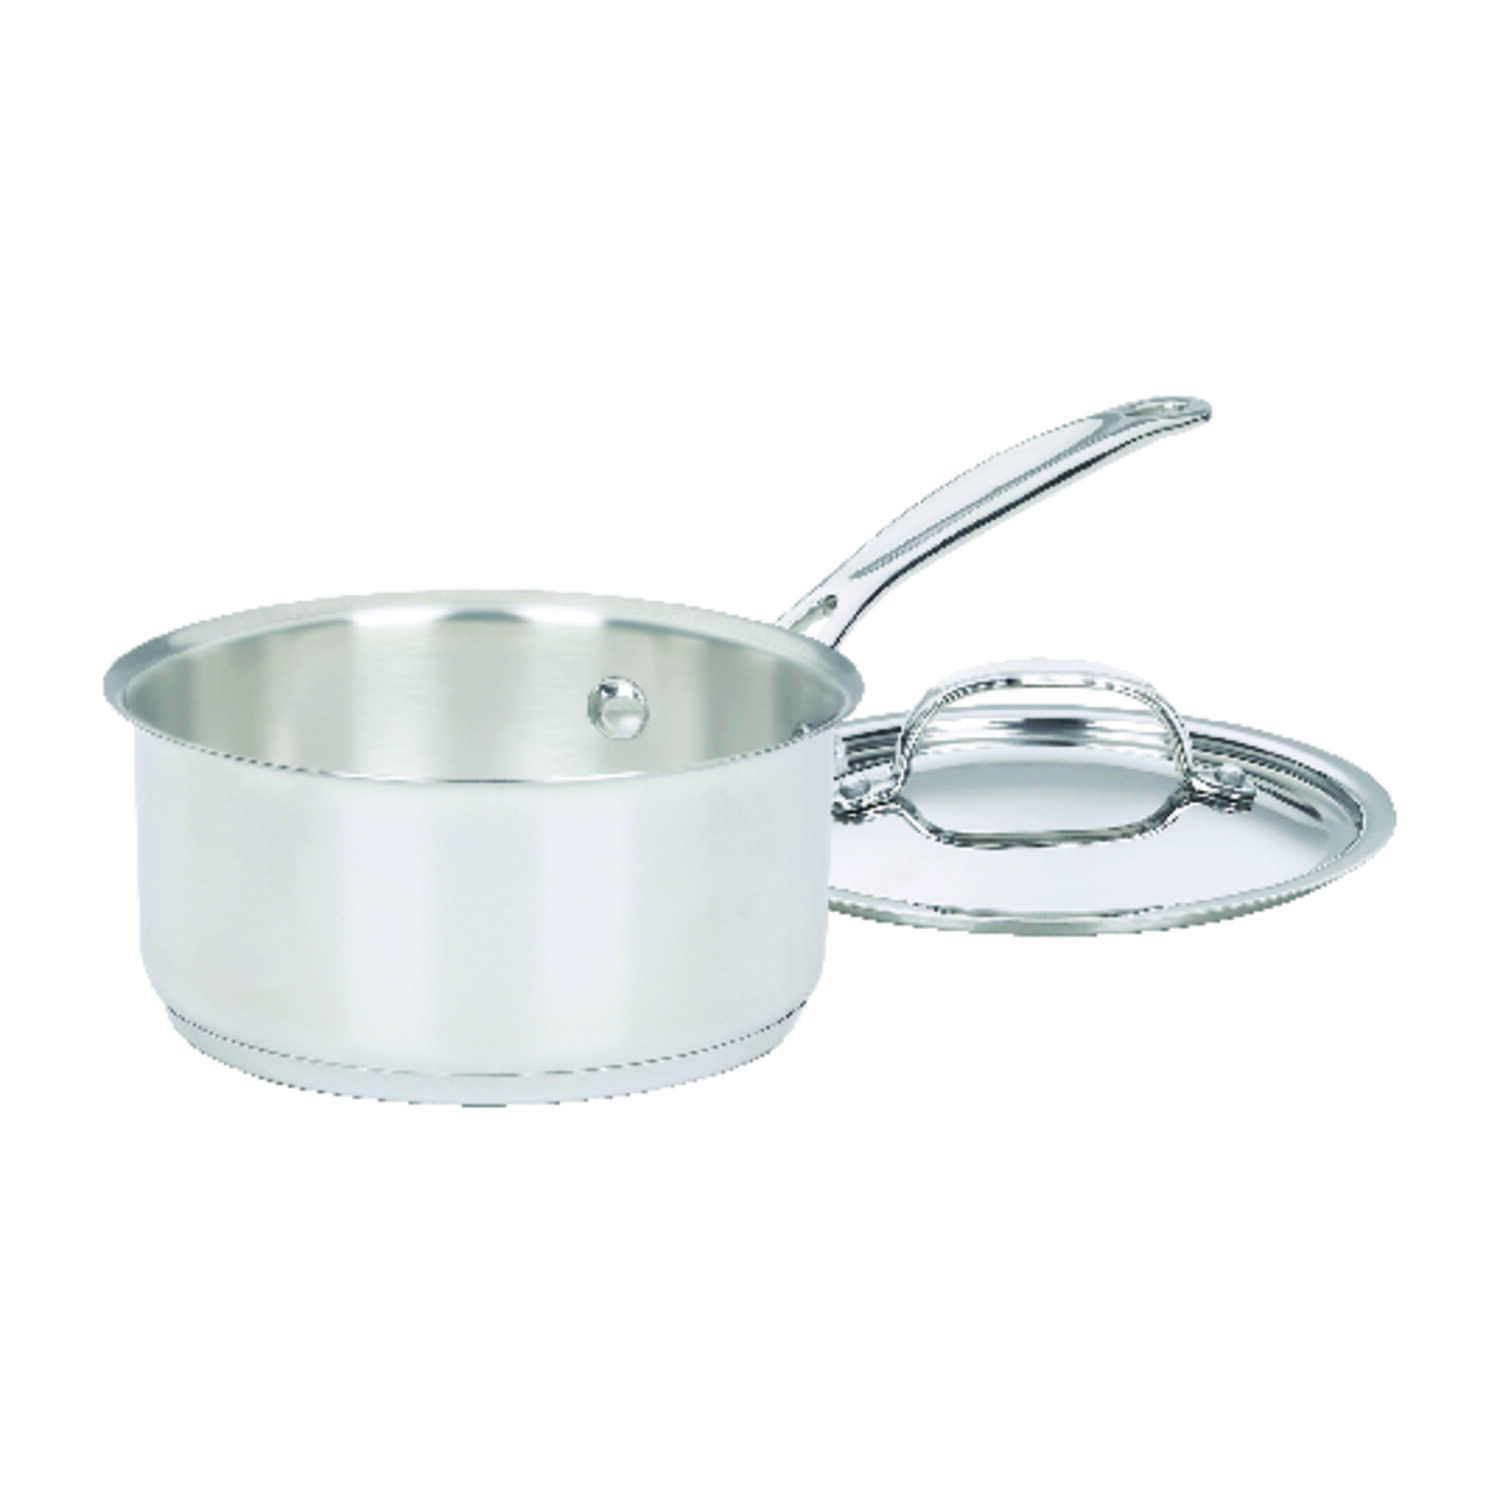 Cuisinart  Chef's Classic  Stainless Steel  Saucepan  Silver  1-1/2 qt.